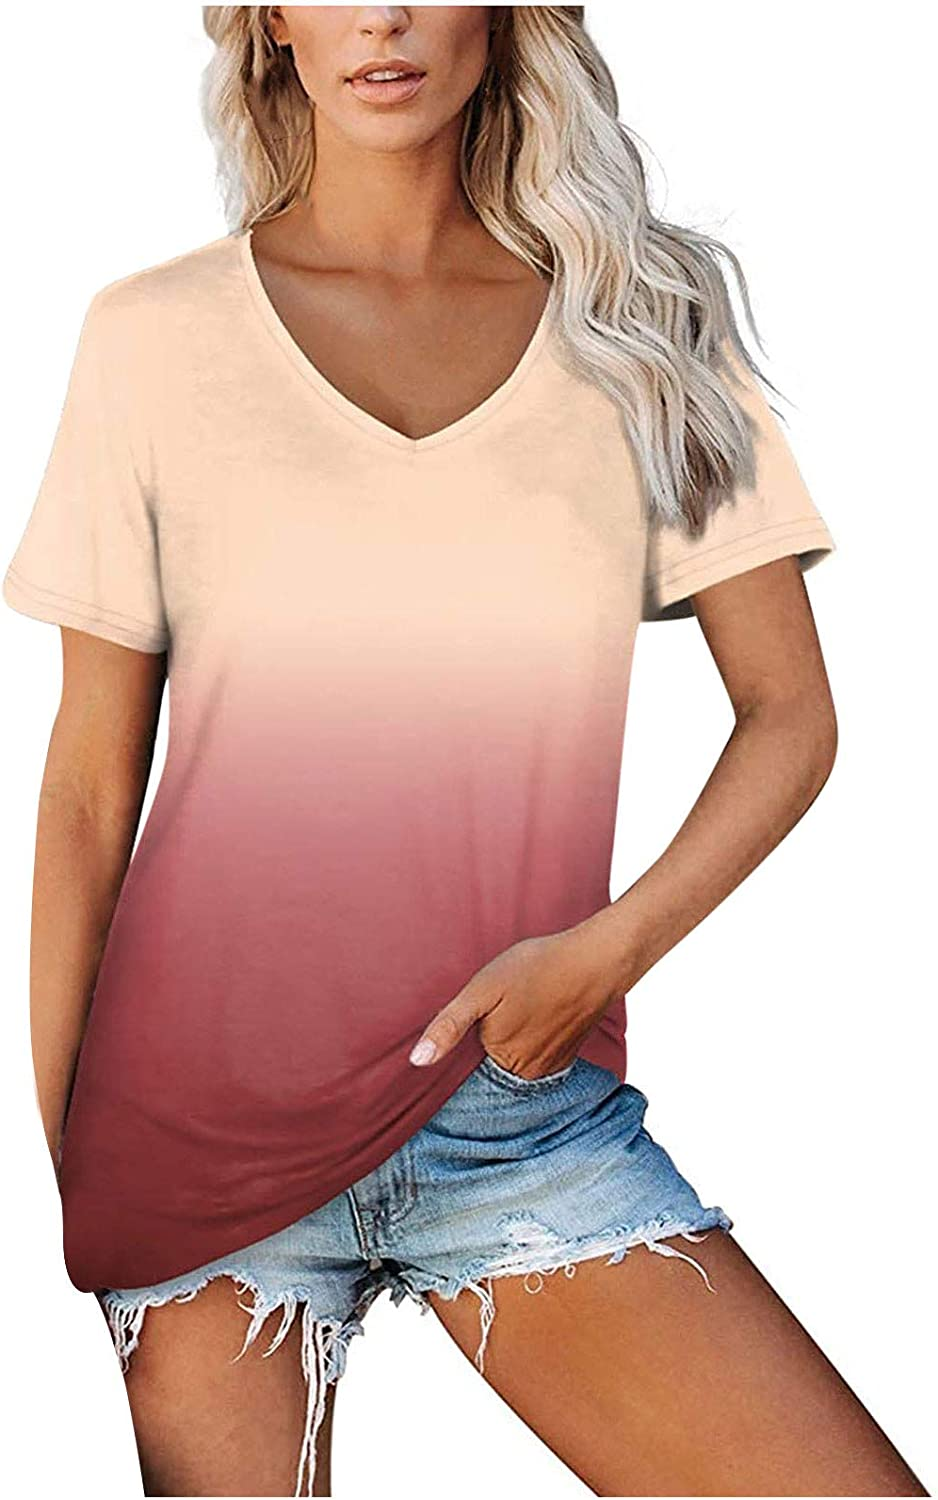 Short Sleeve Summer Tops for Women Casual Gradient Color T-Shirts Tops Ladies Fashion Crewneck Tunic Tops Plus Size